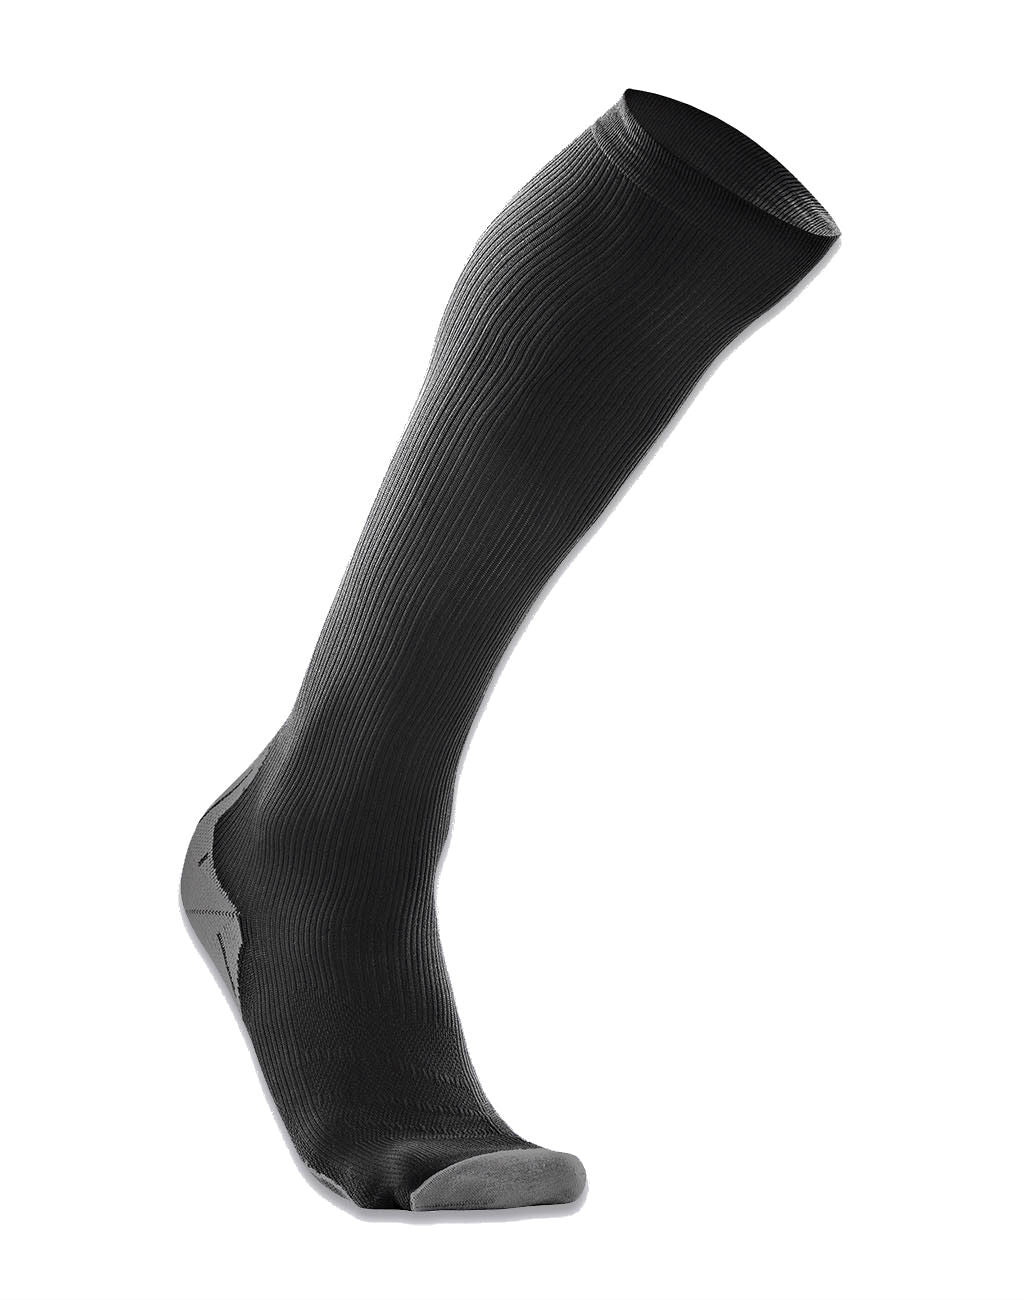 2XU Compression Recovery Socks (Women's)Black_master_image